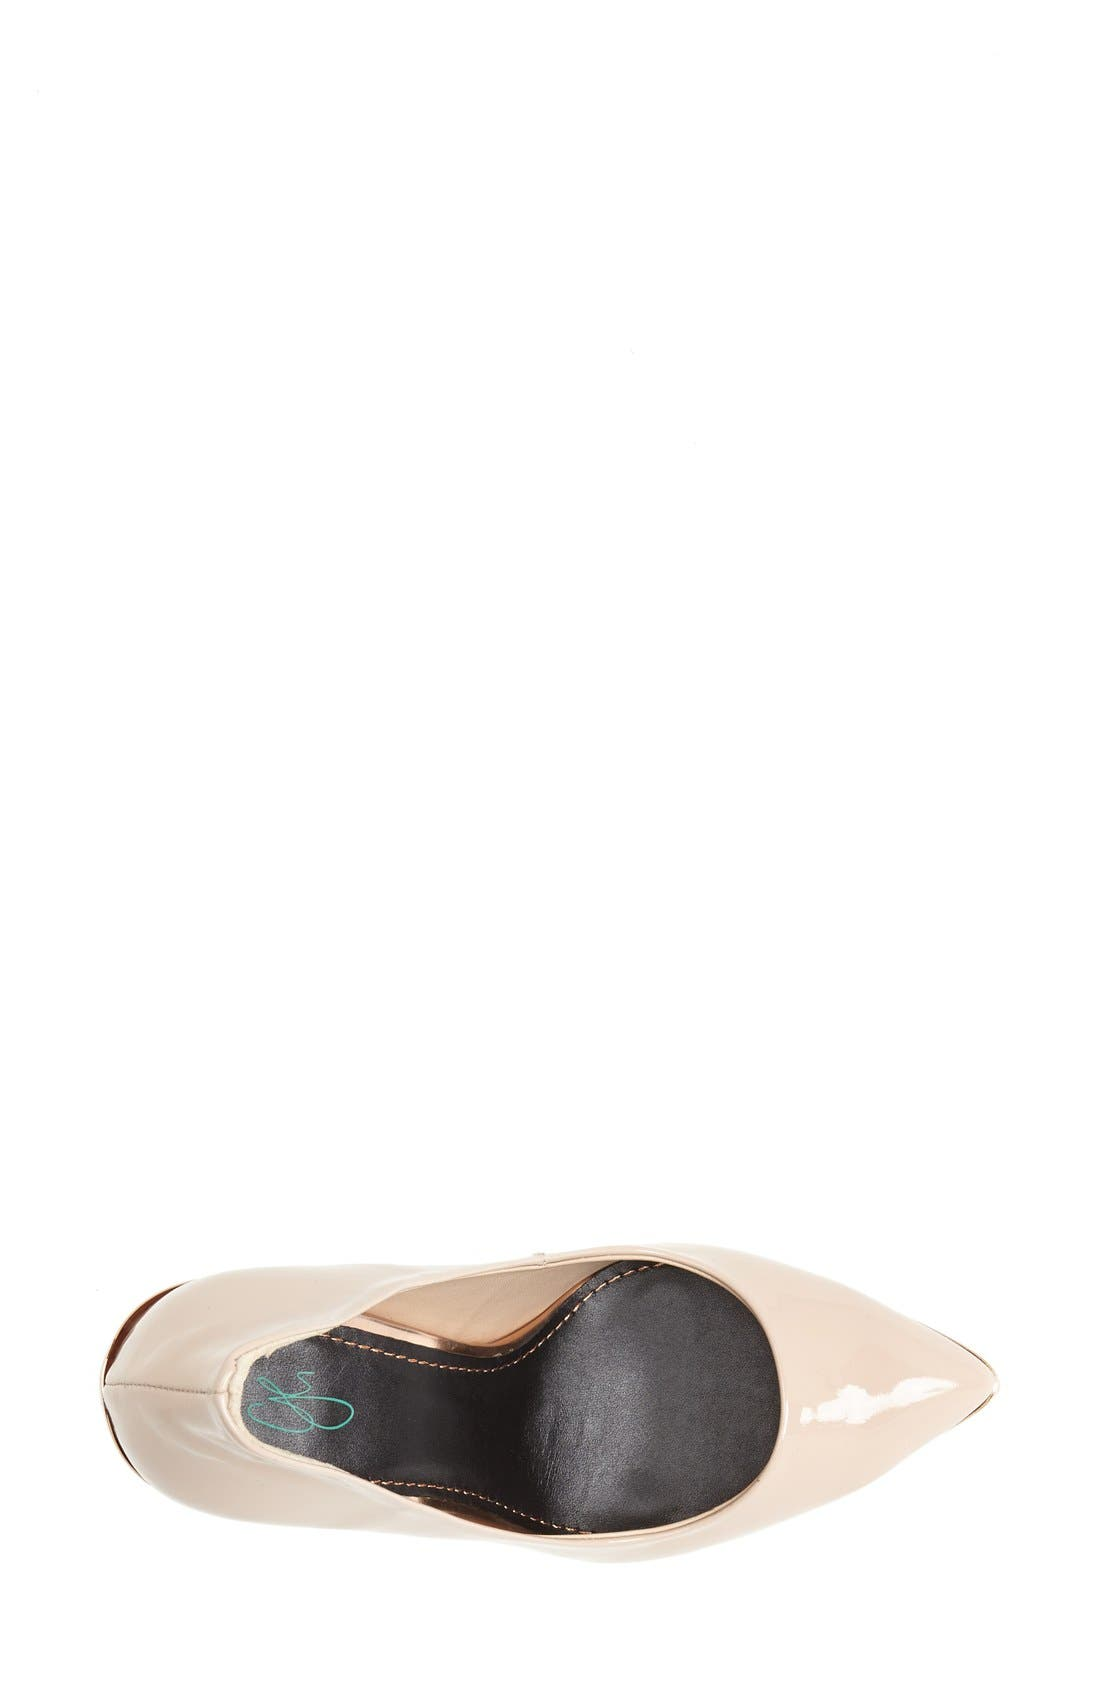 Alternate Image 3  - Topshop by CJG 'High Pitch' Patent Leather Pump (Women)